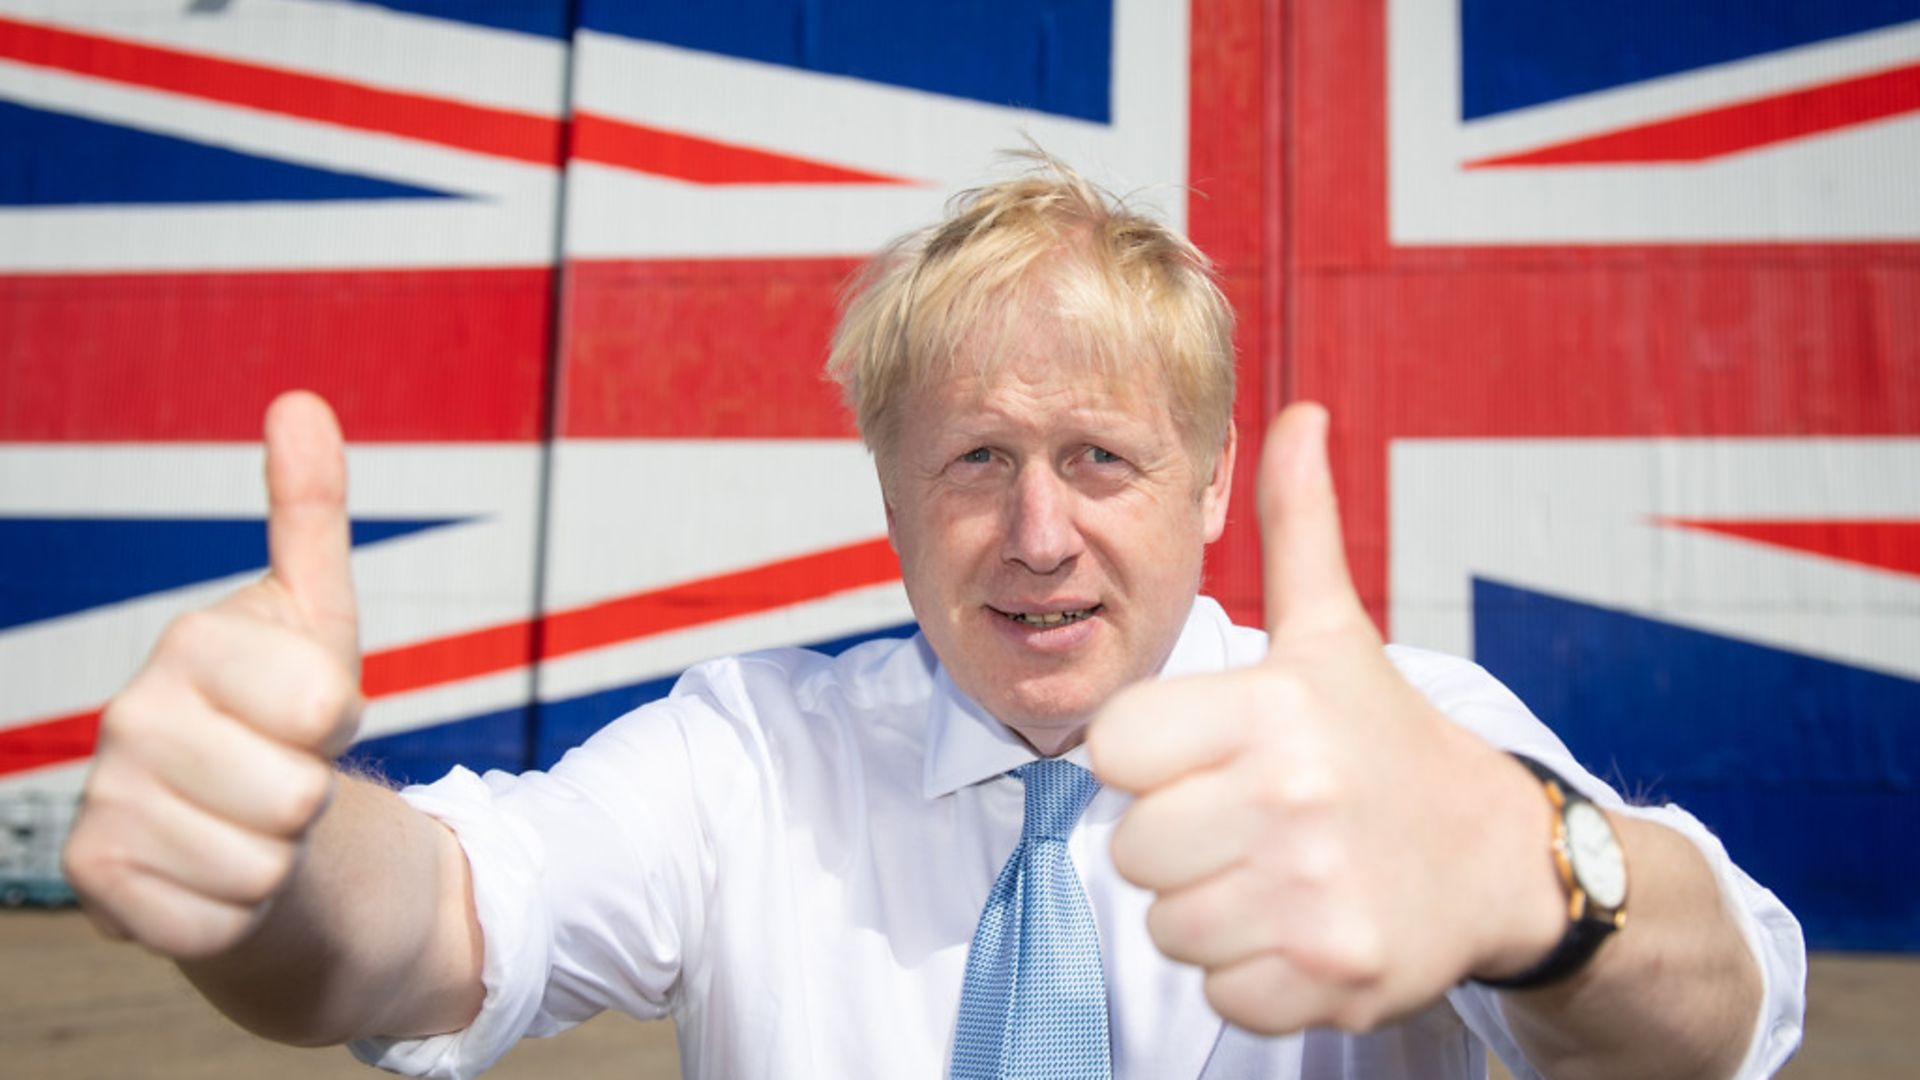 Boris Johnson poses for a 2019 photograph in front of a Union flag - Credit: Getty Images